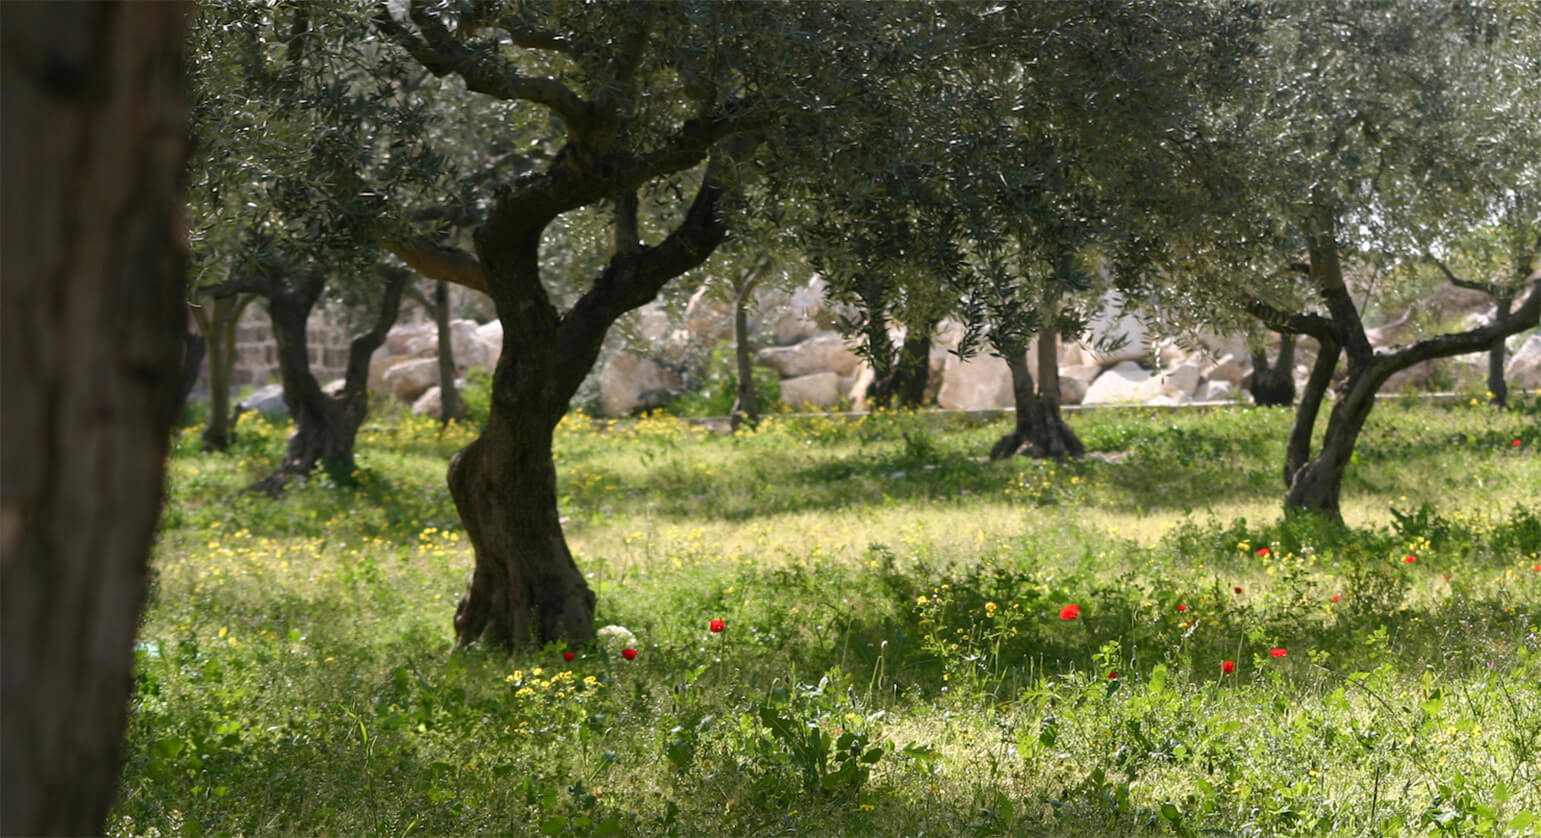 a field of trees and blooming red flowers